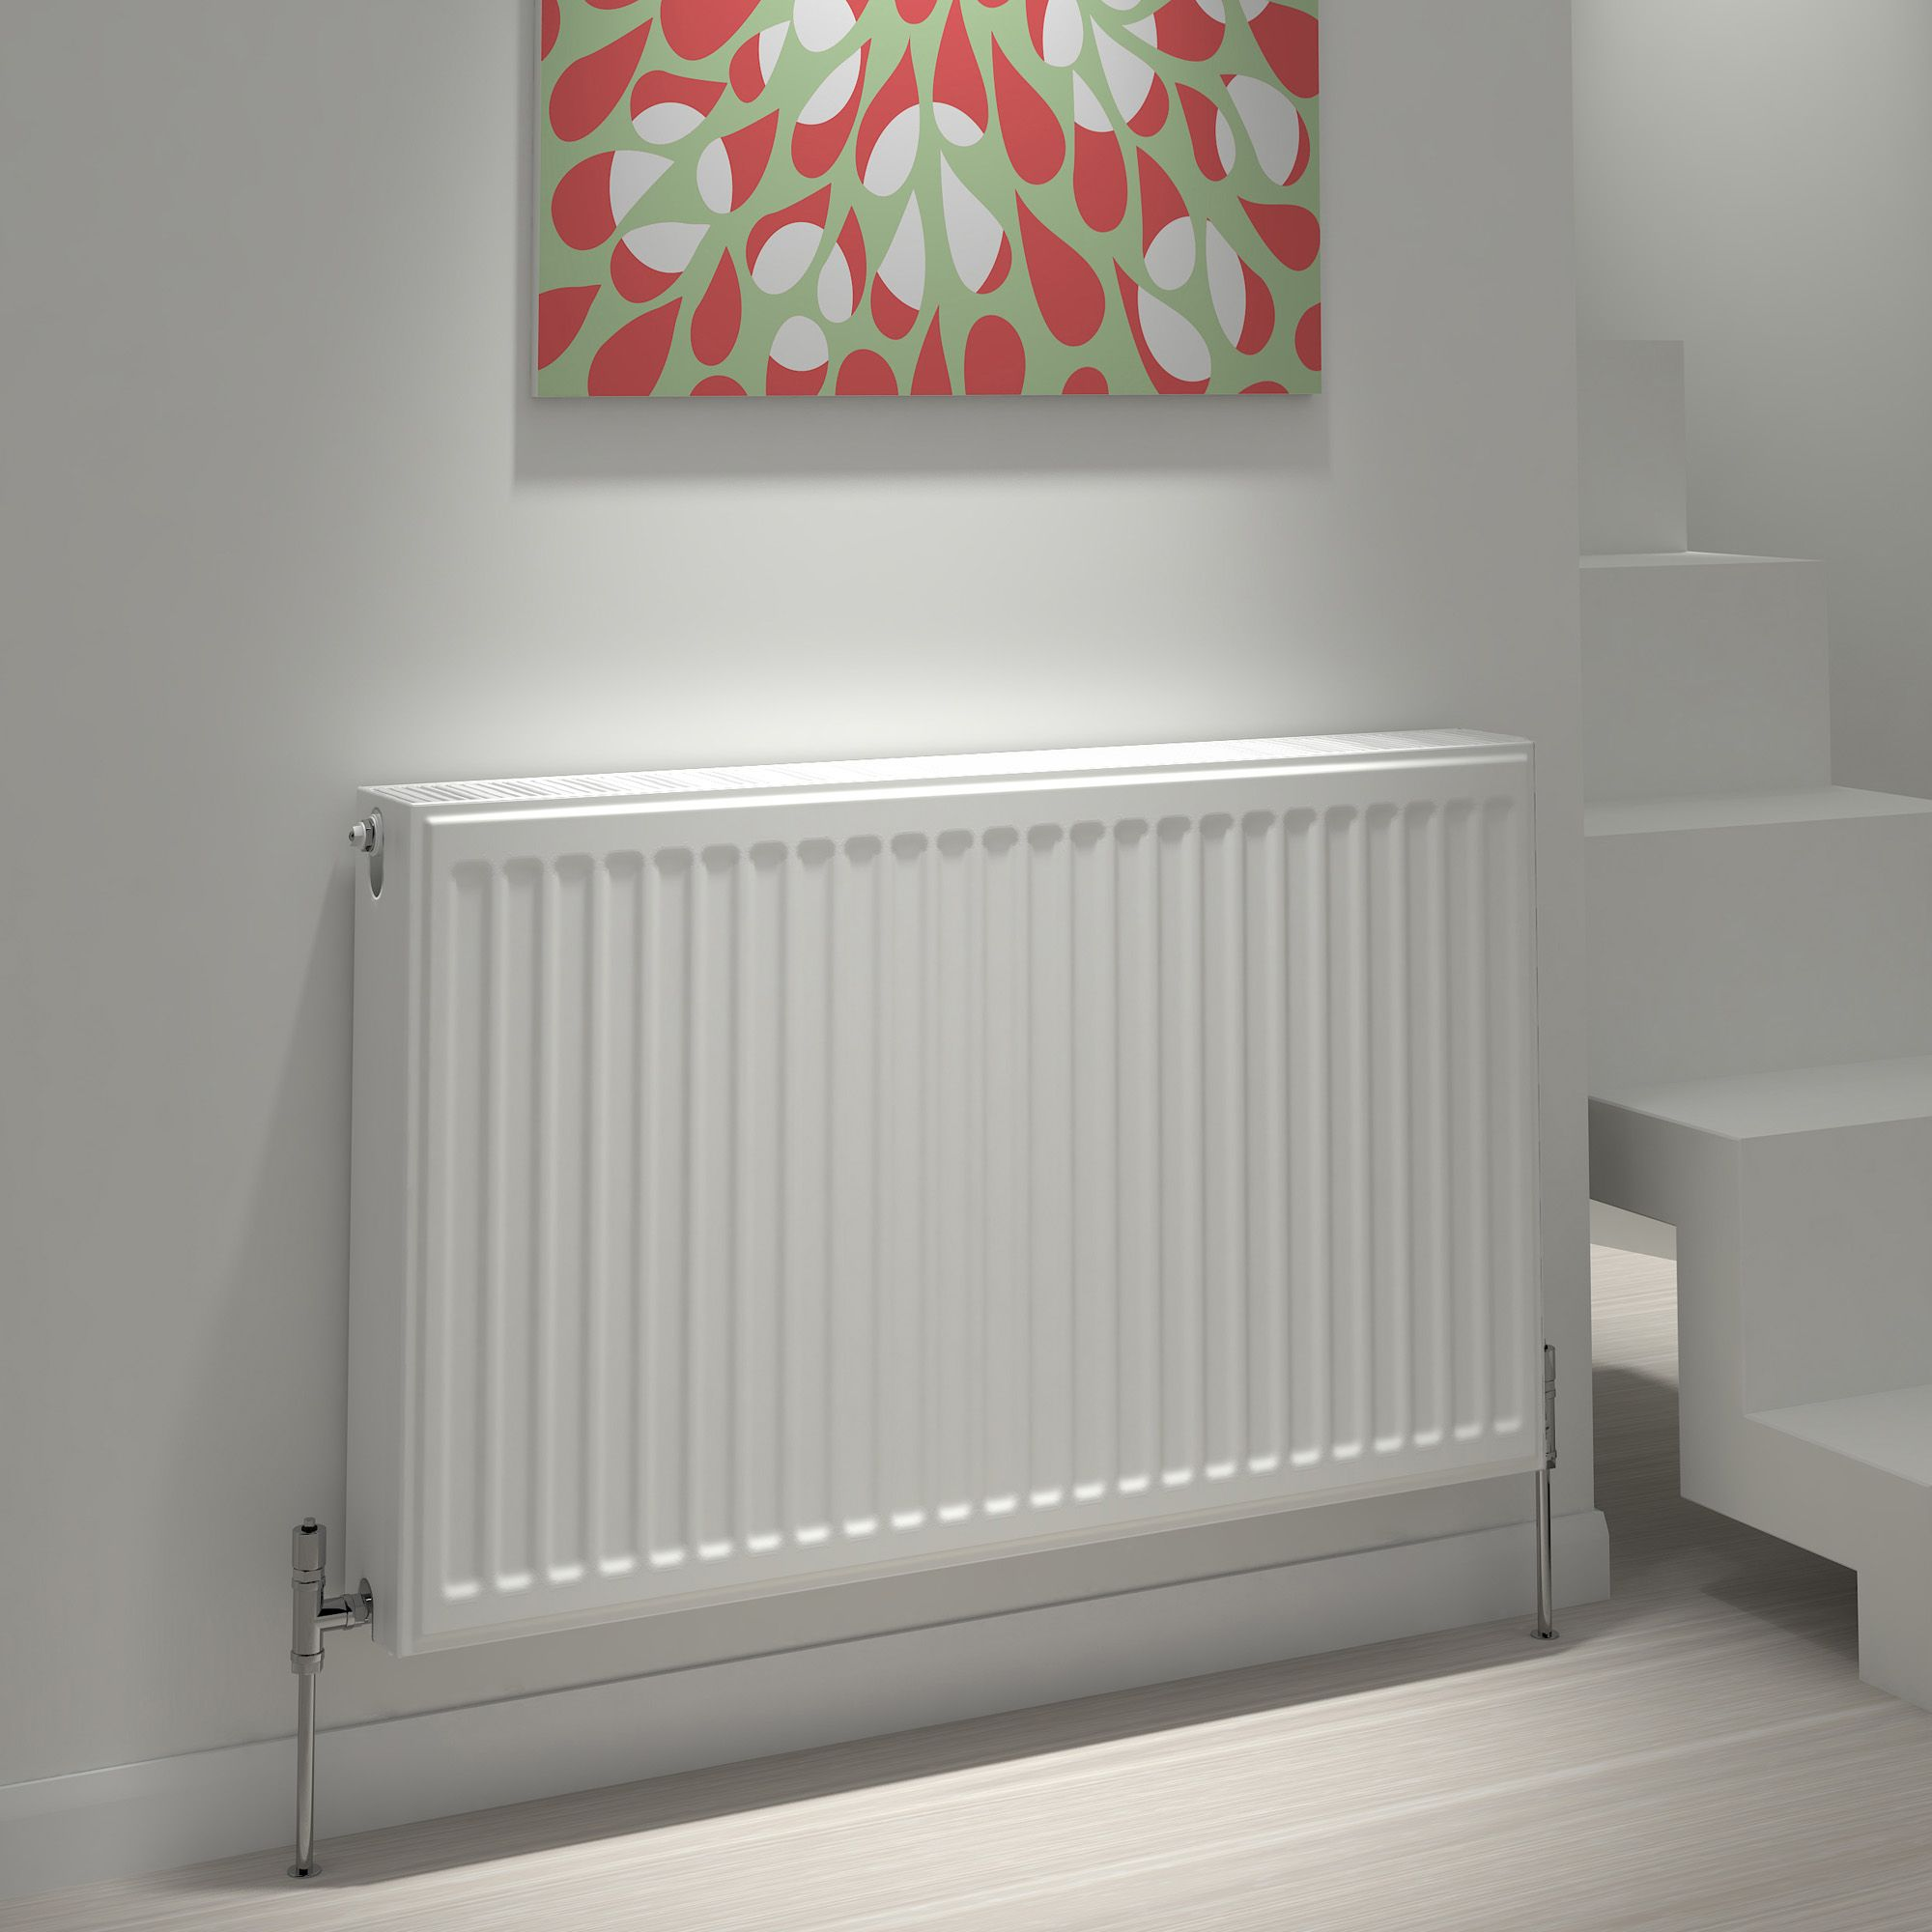 Kudox Type 22 Double Panel Radiator, (H)400mm (W)800mm